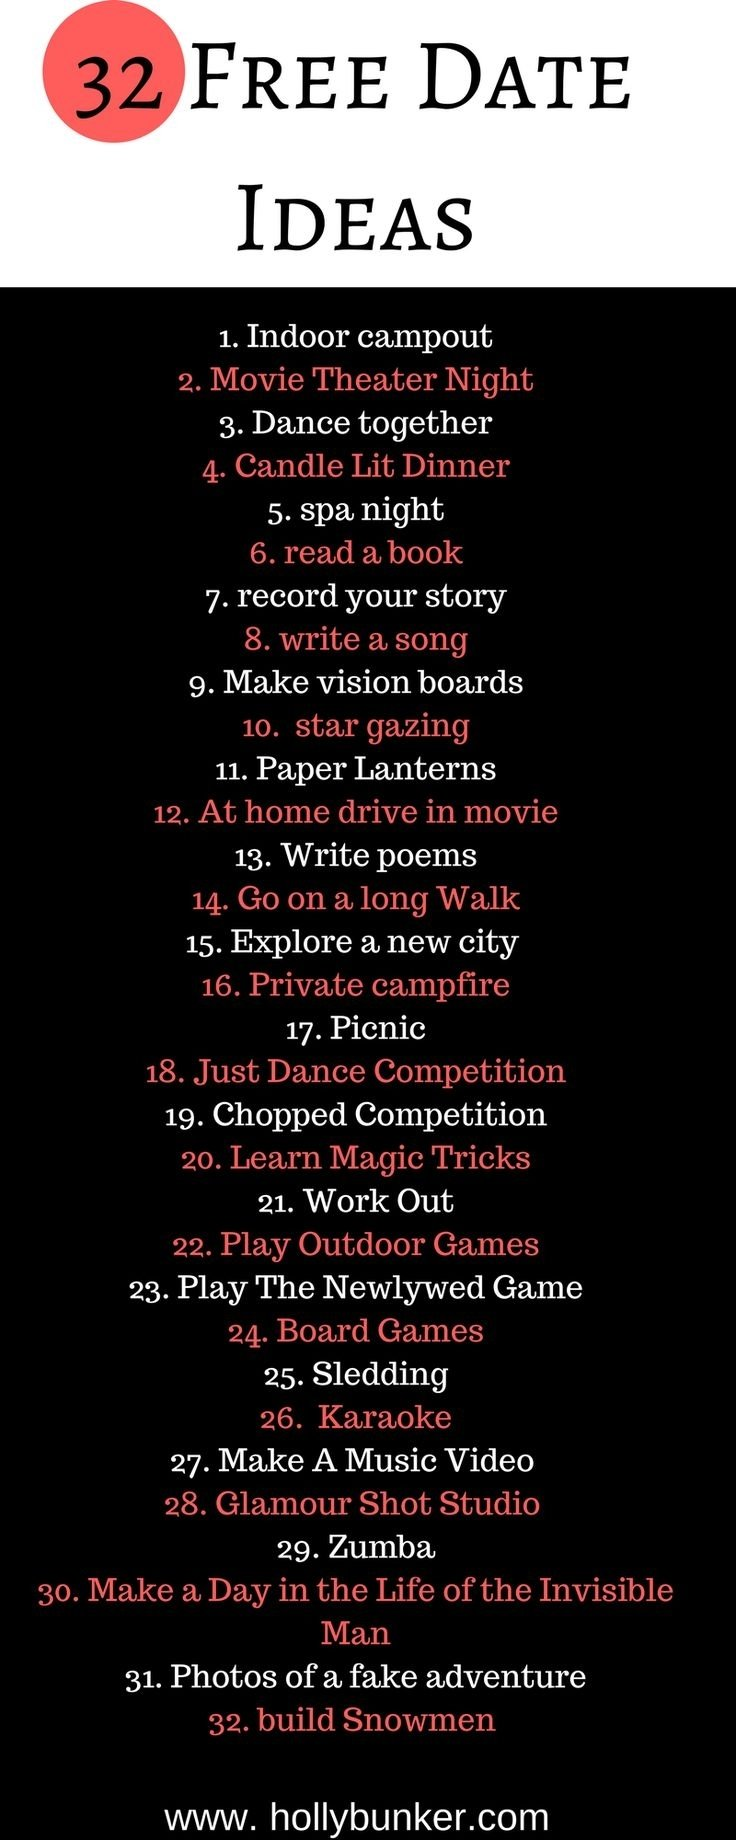 10 Gorgeous Creative Date Ideas For Couples 630 best date night ideas images on pinterest date nights 1 2020